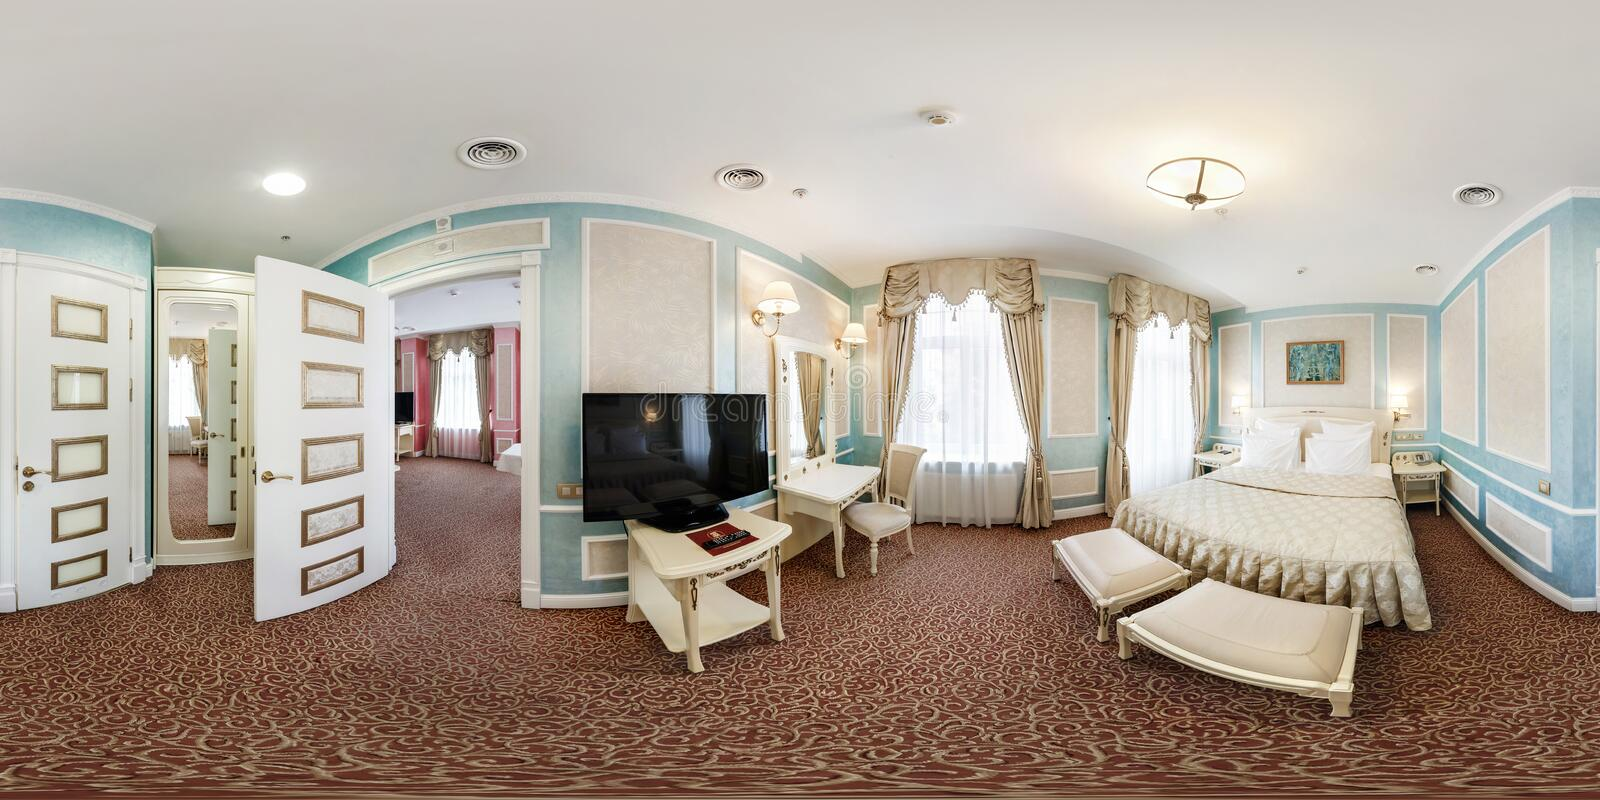 MINSK, BELARUS - JULY, 2016: Full spherical 360 by 180 degrees seamless hdri panorama in interior hall bedroom in modern hotel in royalty free stock photography